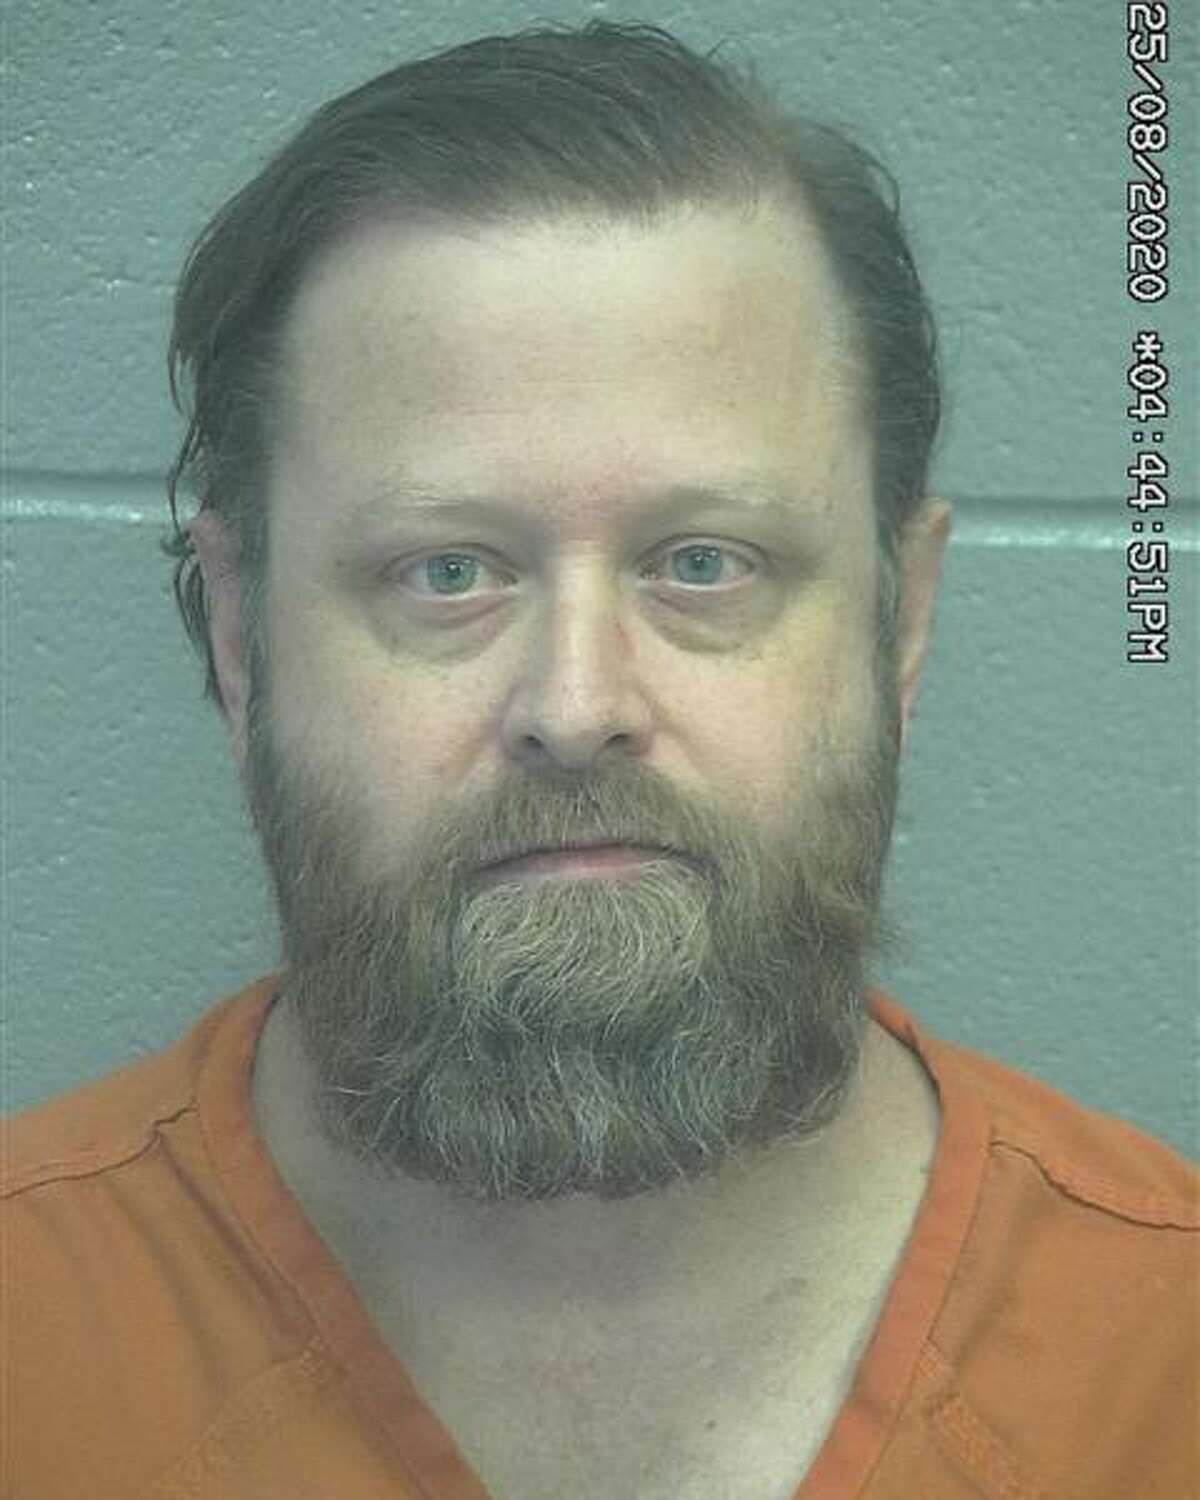 William Boone is being charged with improper relationship between educator and student.